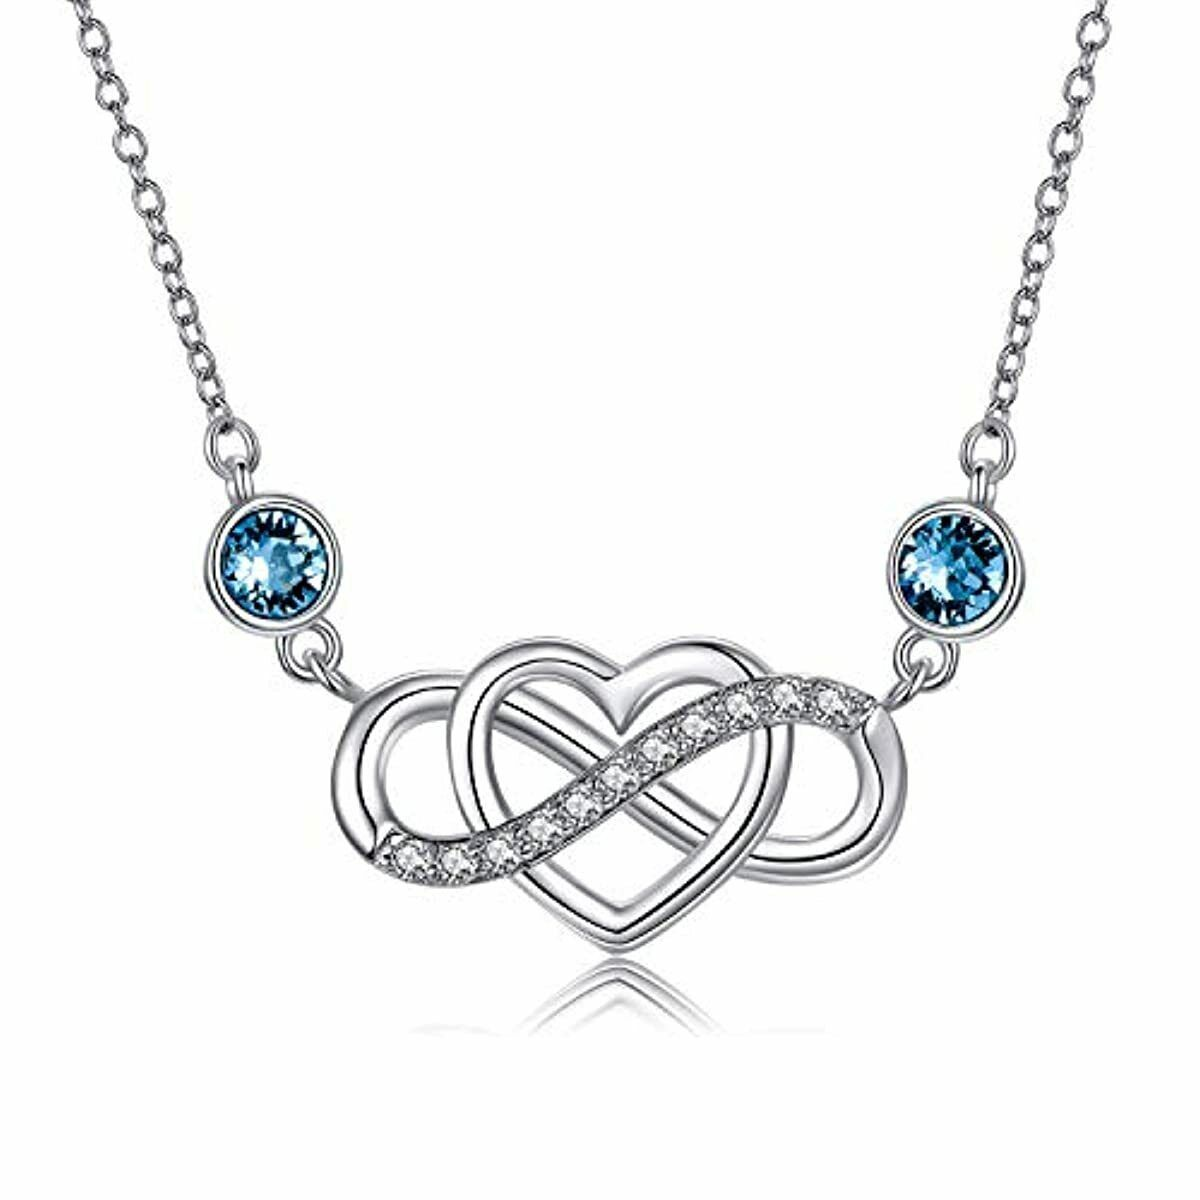 Sterling Silver Endless Love Pendant Necklace For Women Jewelry